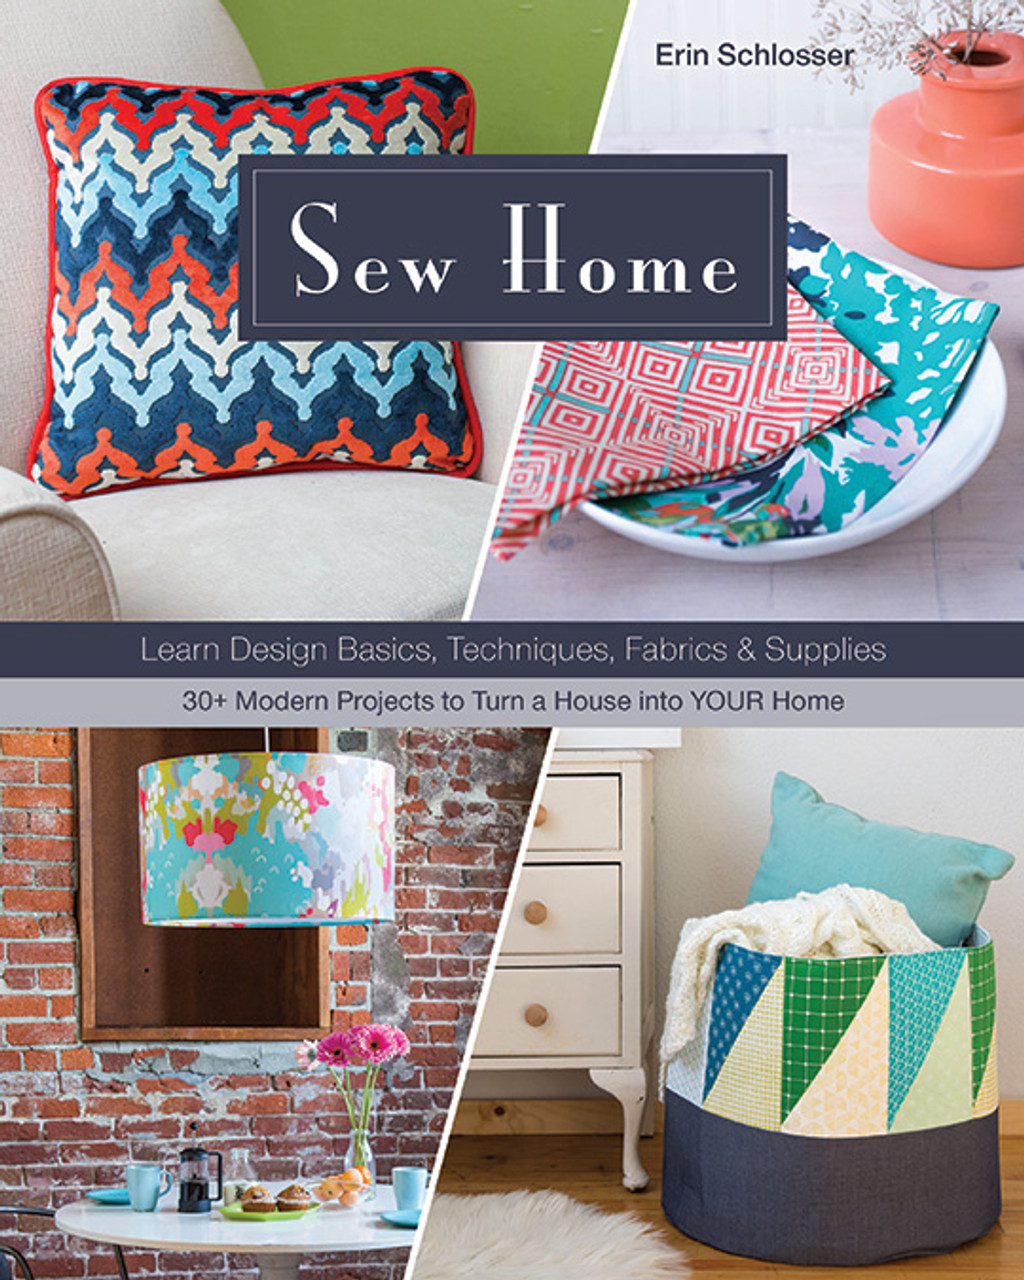 Sew Home